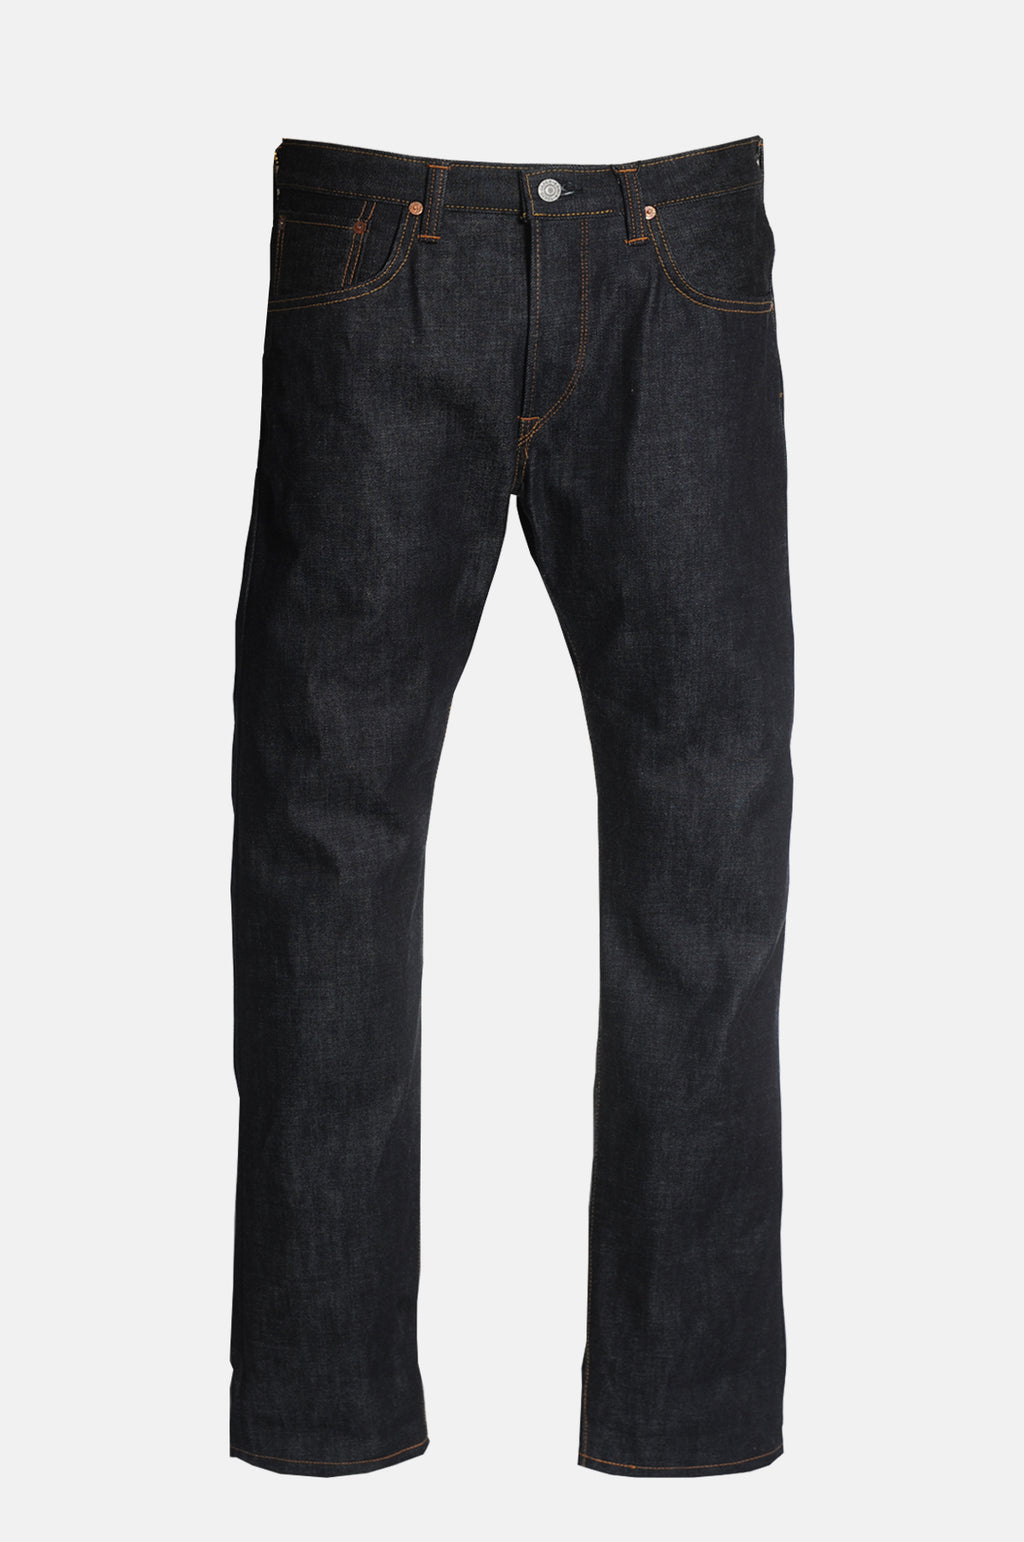 Regular Tapered Rainbow Selvedge 13oz Jeans